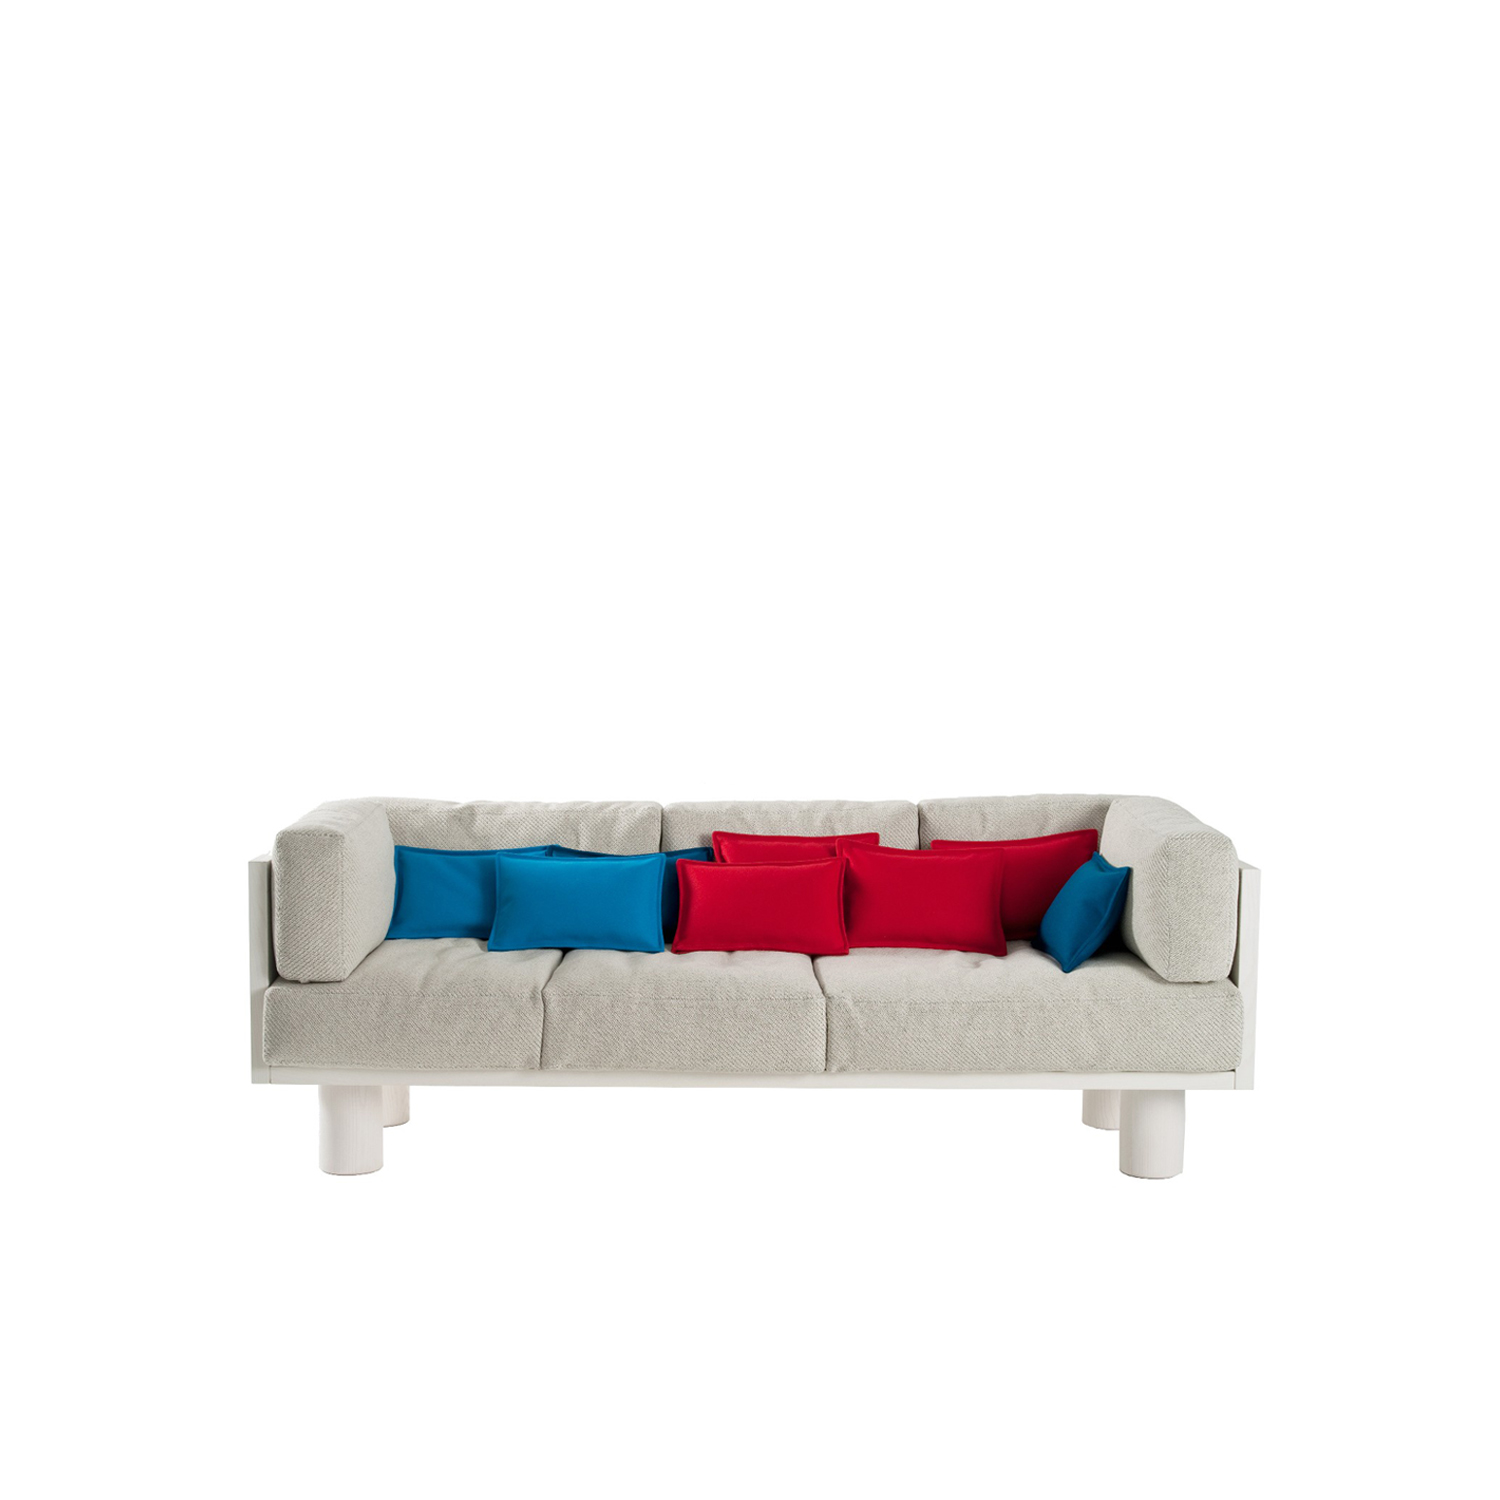 Ottoman Sofa - Ottoman sofa, clearly inspired by the Ottoman culture, is born from the desire to have a comfortable and informal yet precious seat, to be used in a transversal way.